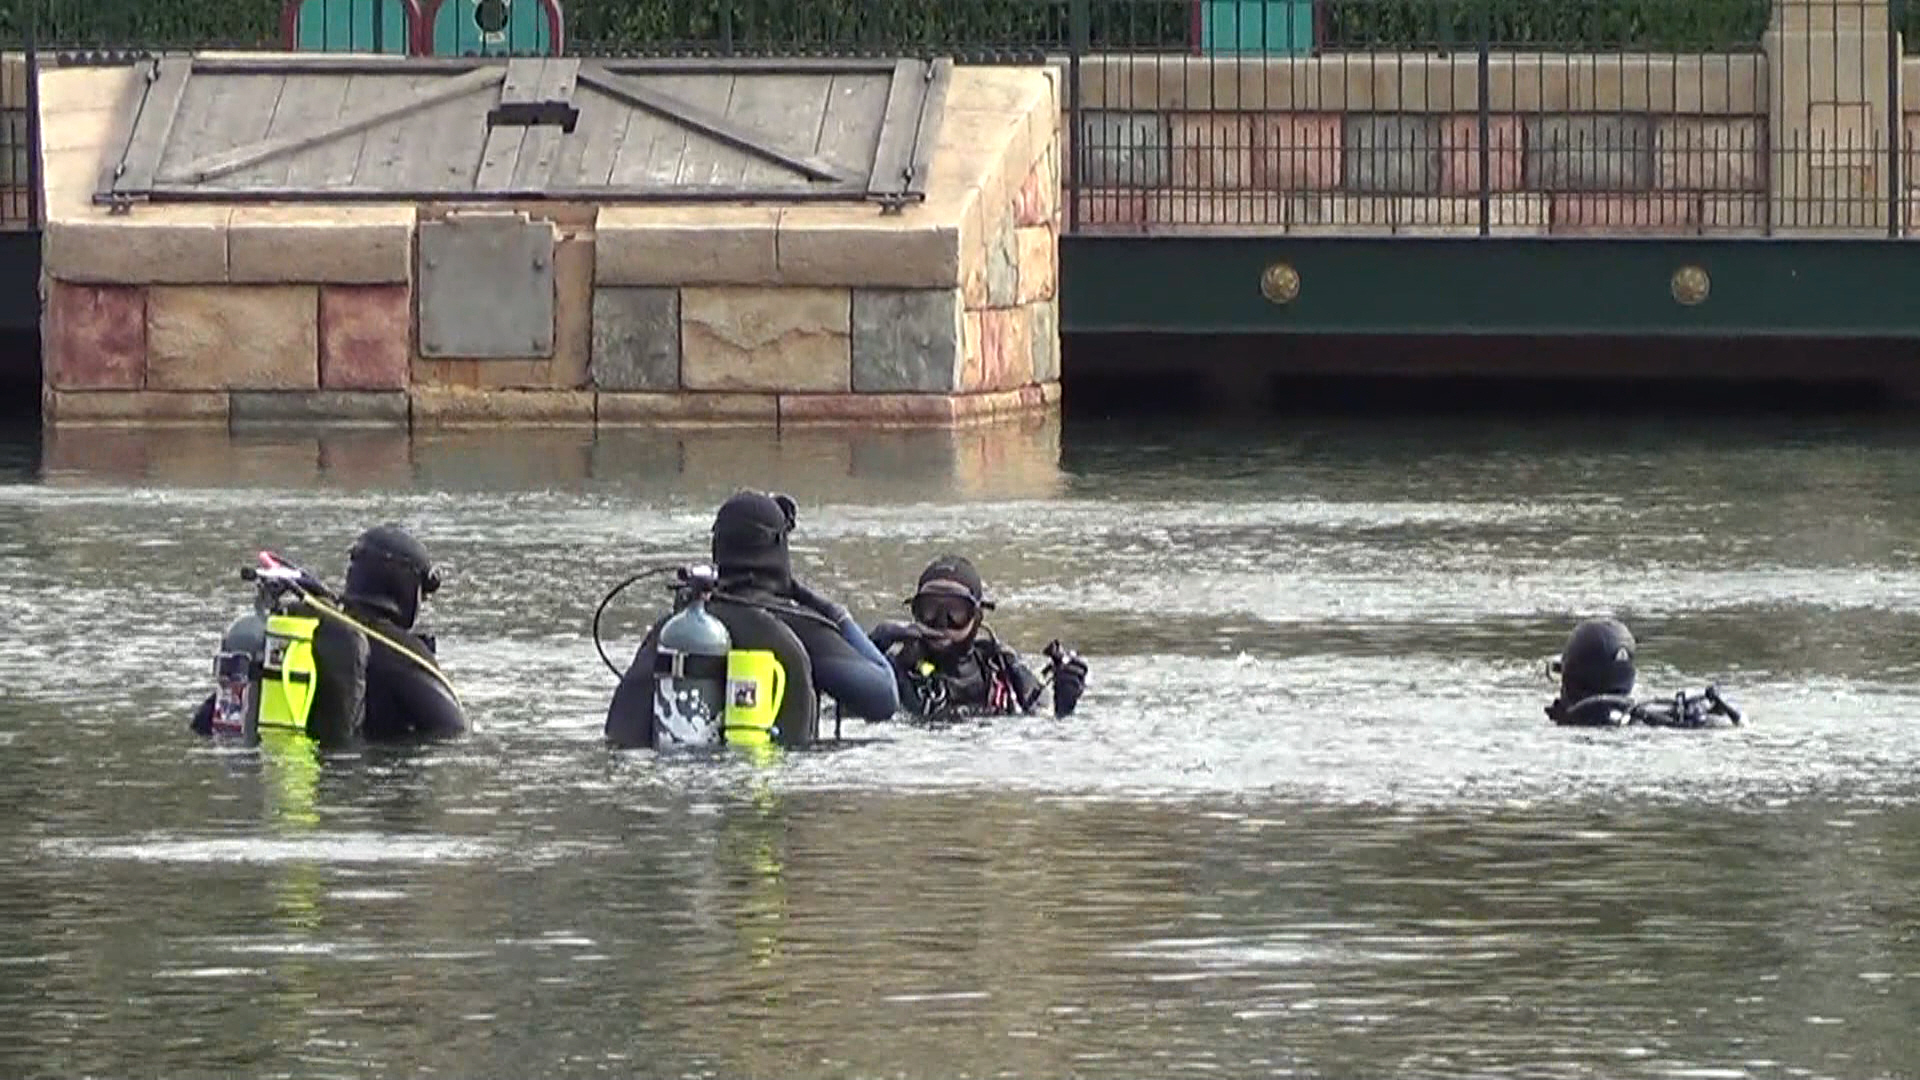 02 Disneyland - Pontoon and scuba gear workers fix and inspect World of Color